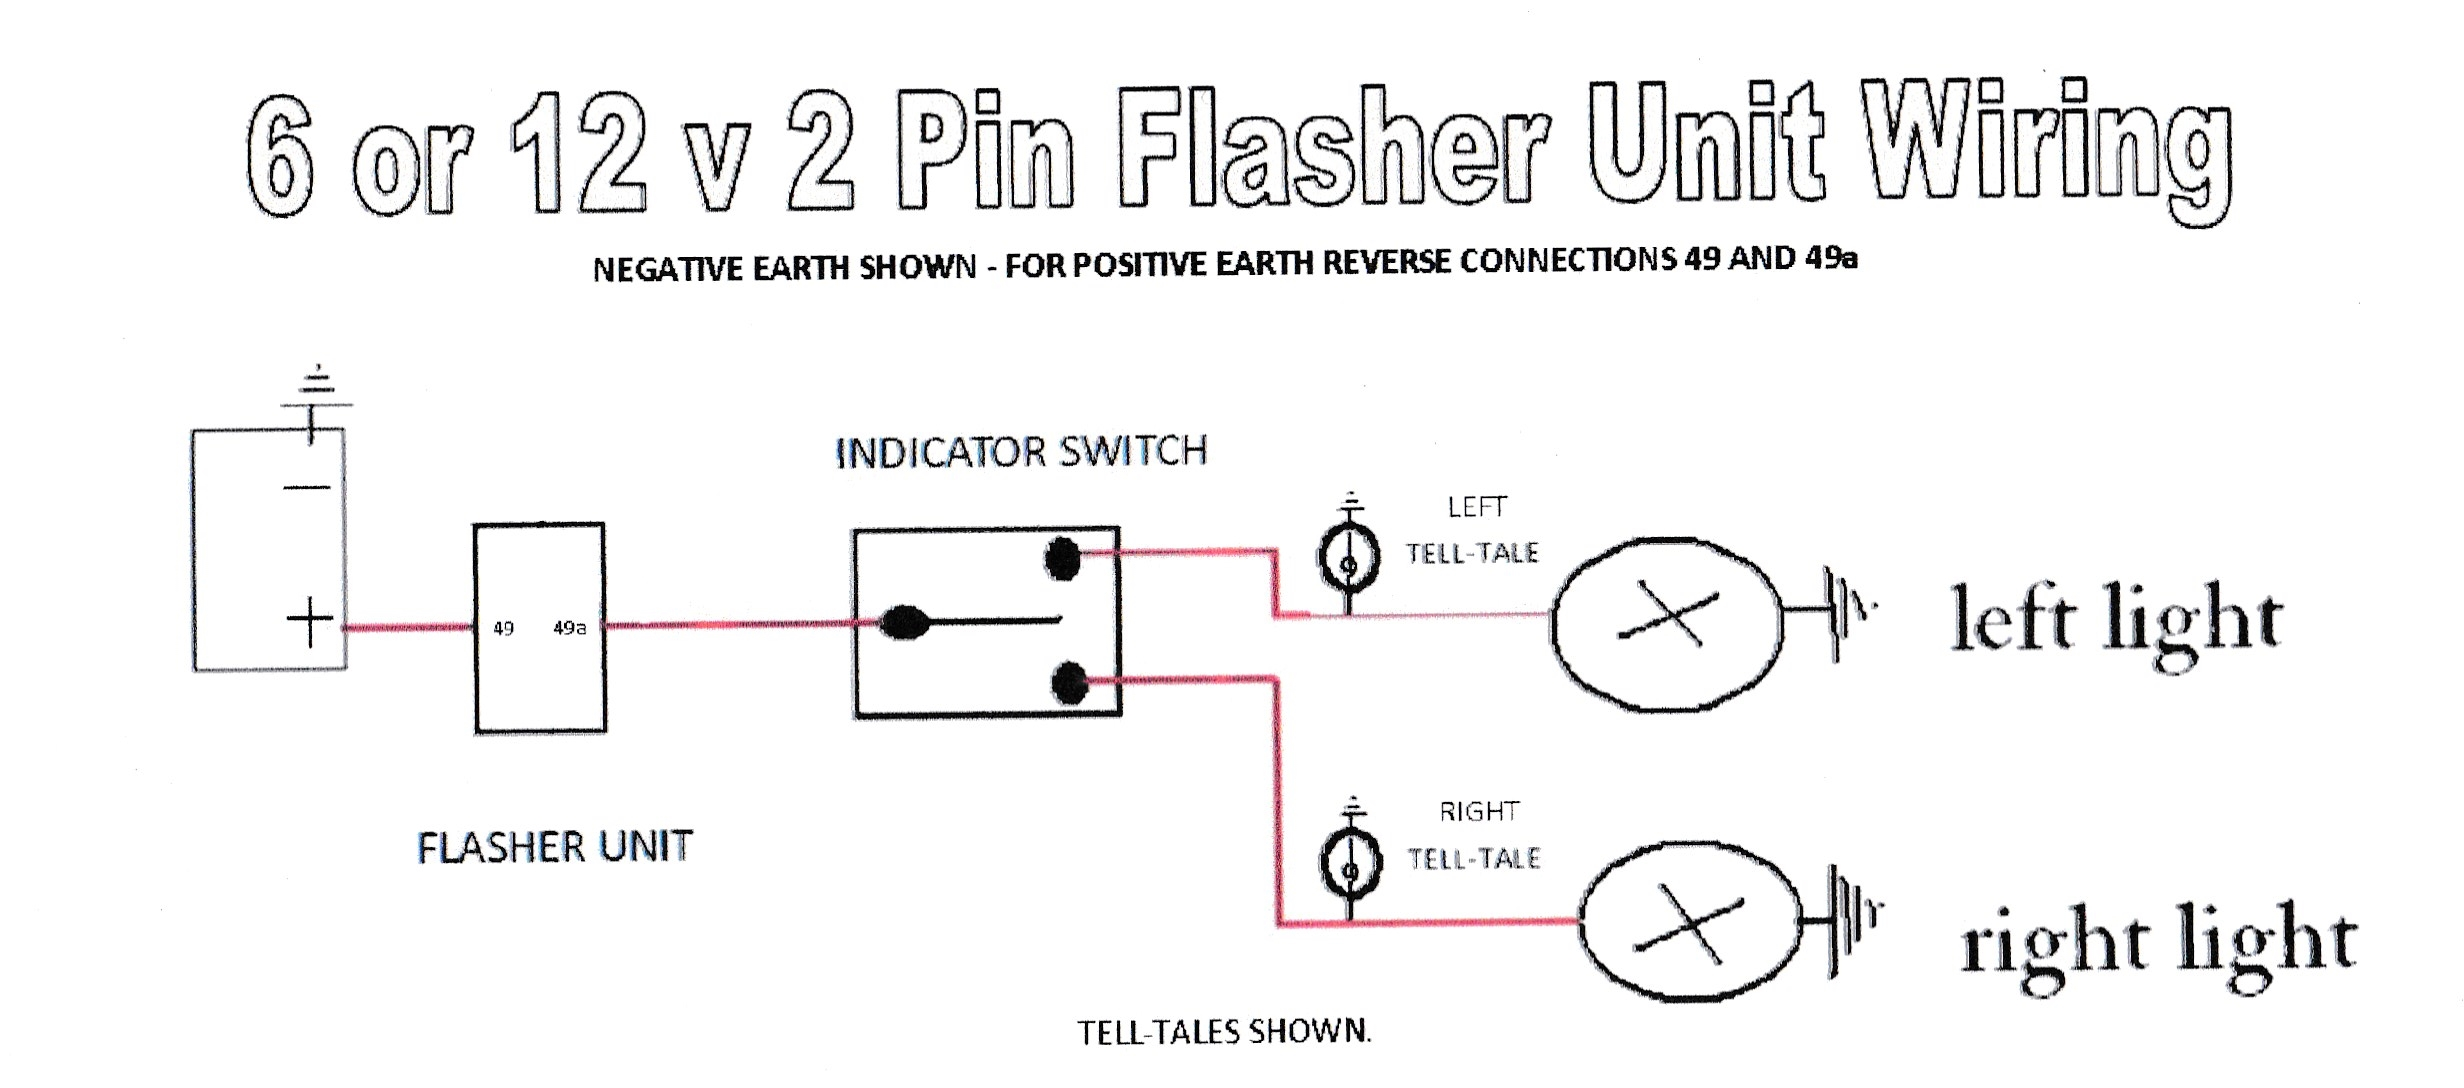 IMG_20150323_0001_NEW wiring diagrams to assist you with connecting up flasher unit wiring diagram at aneh.co